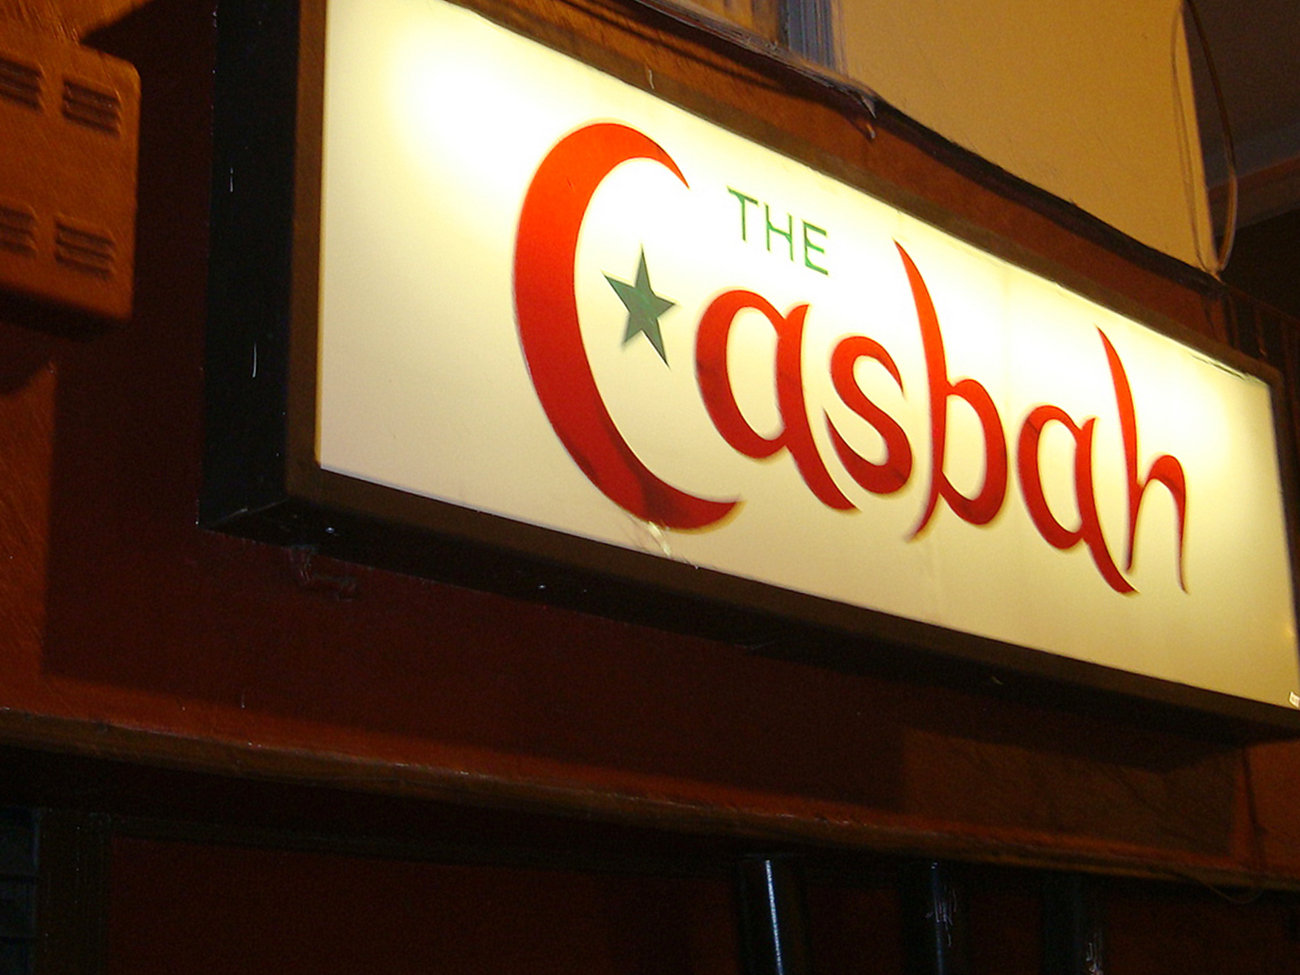 The Casbah Nightclub in San Diego